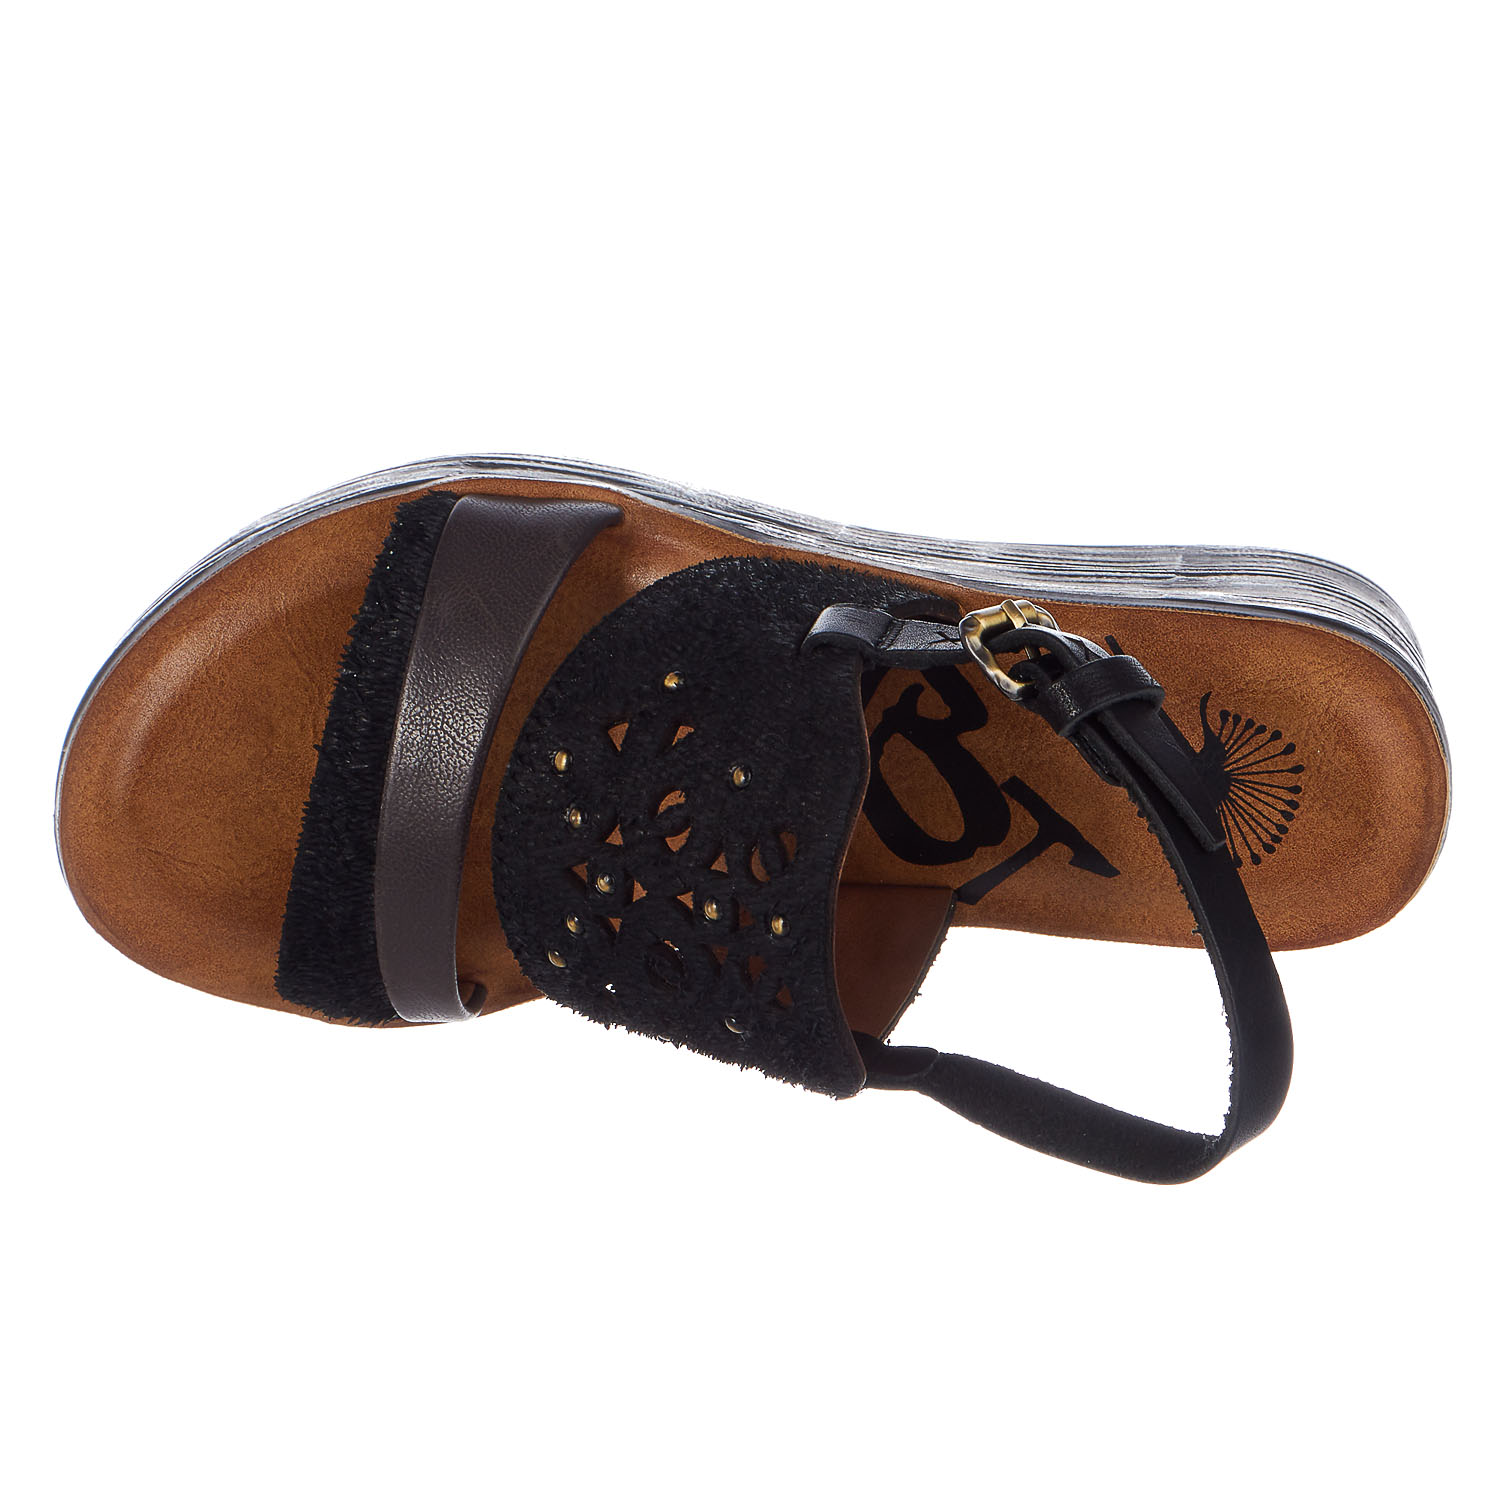 OTBT Hippie Wedge Sandals  Store - Womens/ Selling Online Store  /Man/Woman b50218